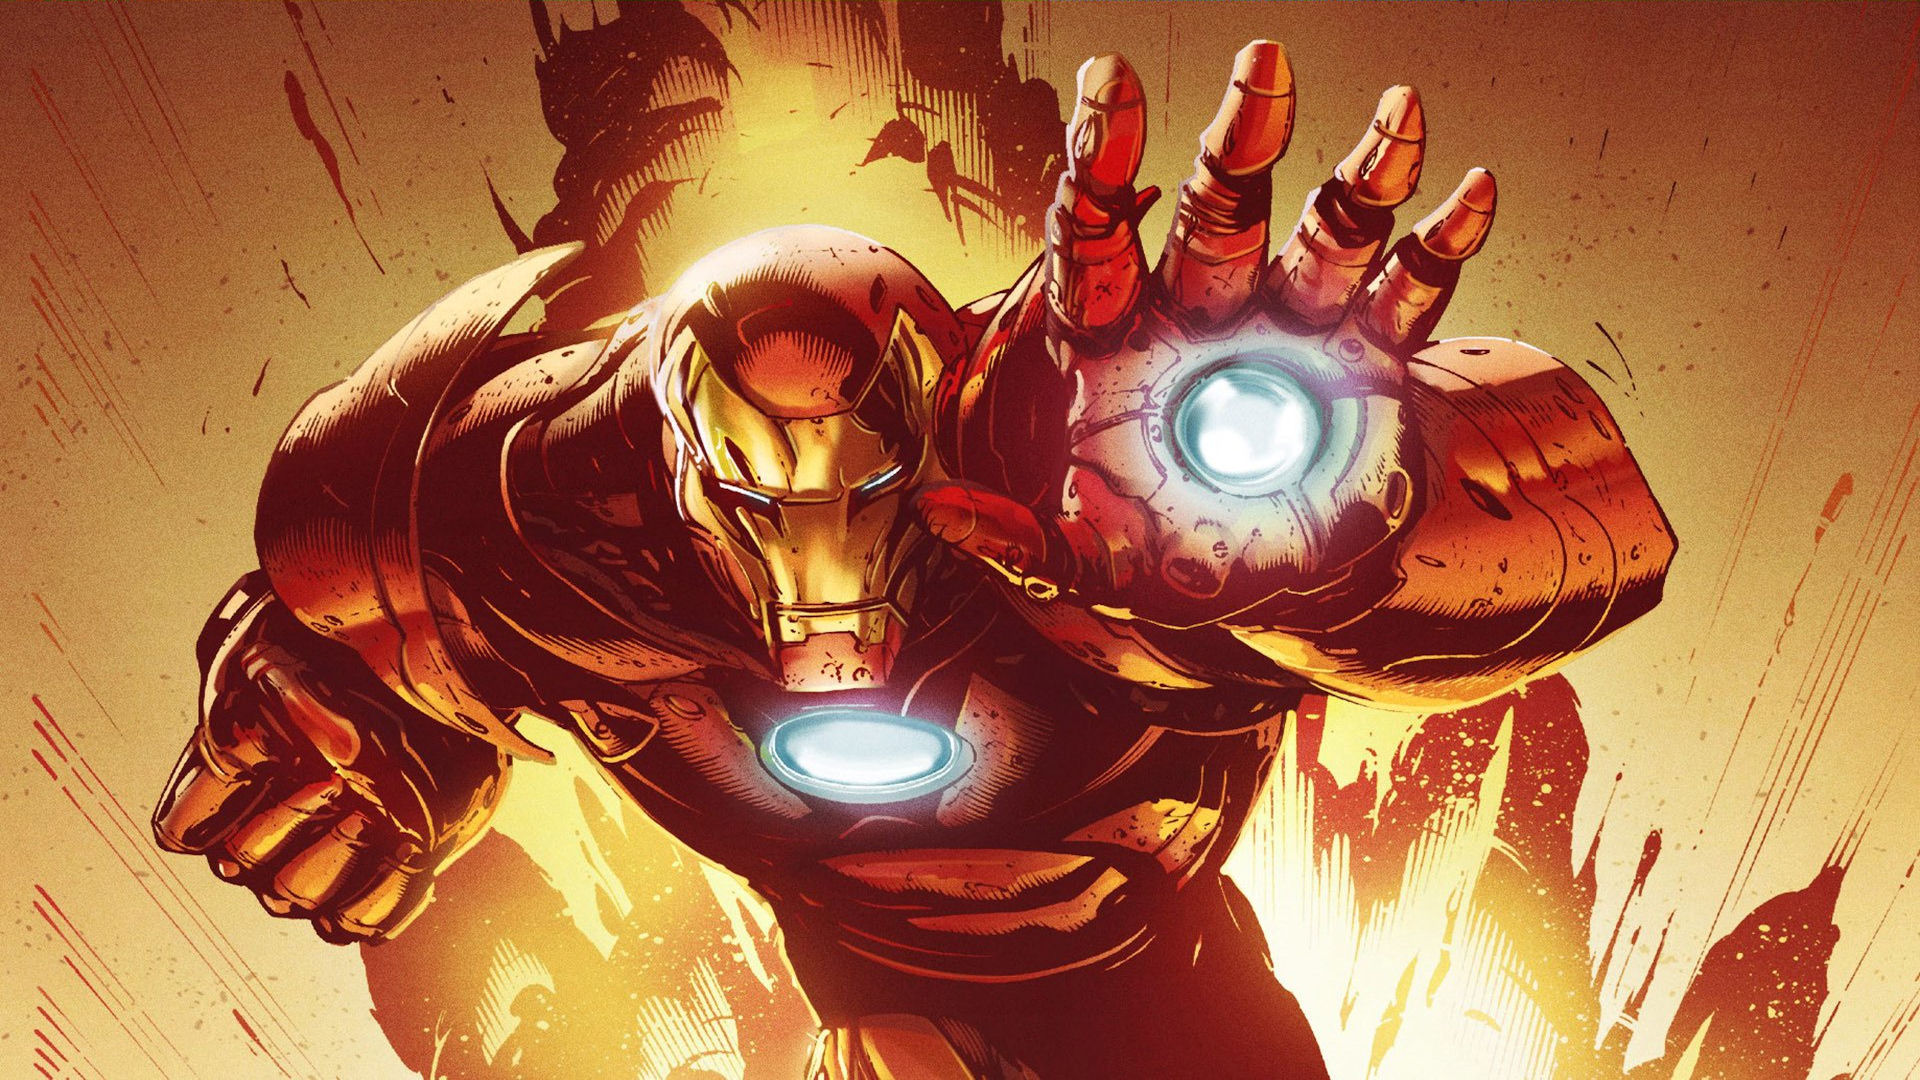 Marvel Wallpaper Hd Ironman Epic Heroes Movie Trailers Toys Tv